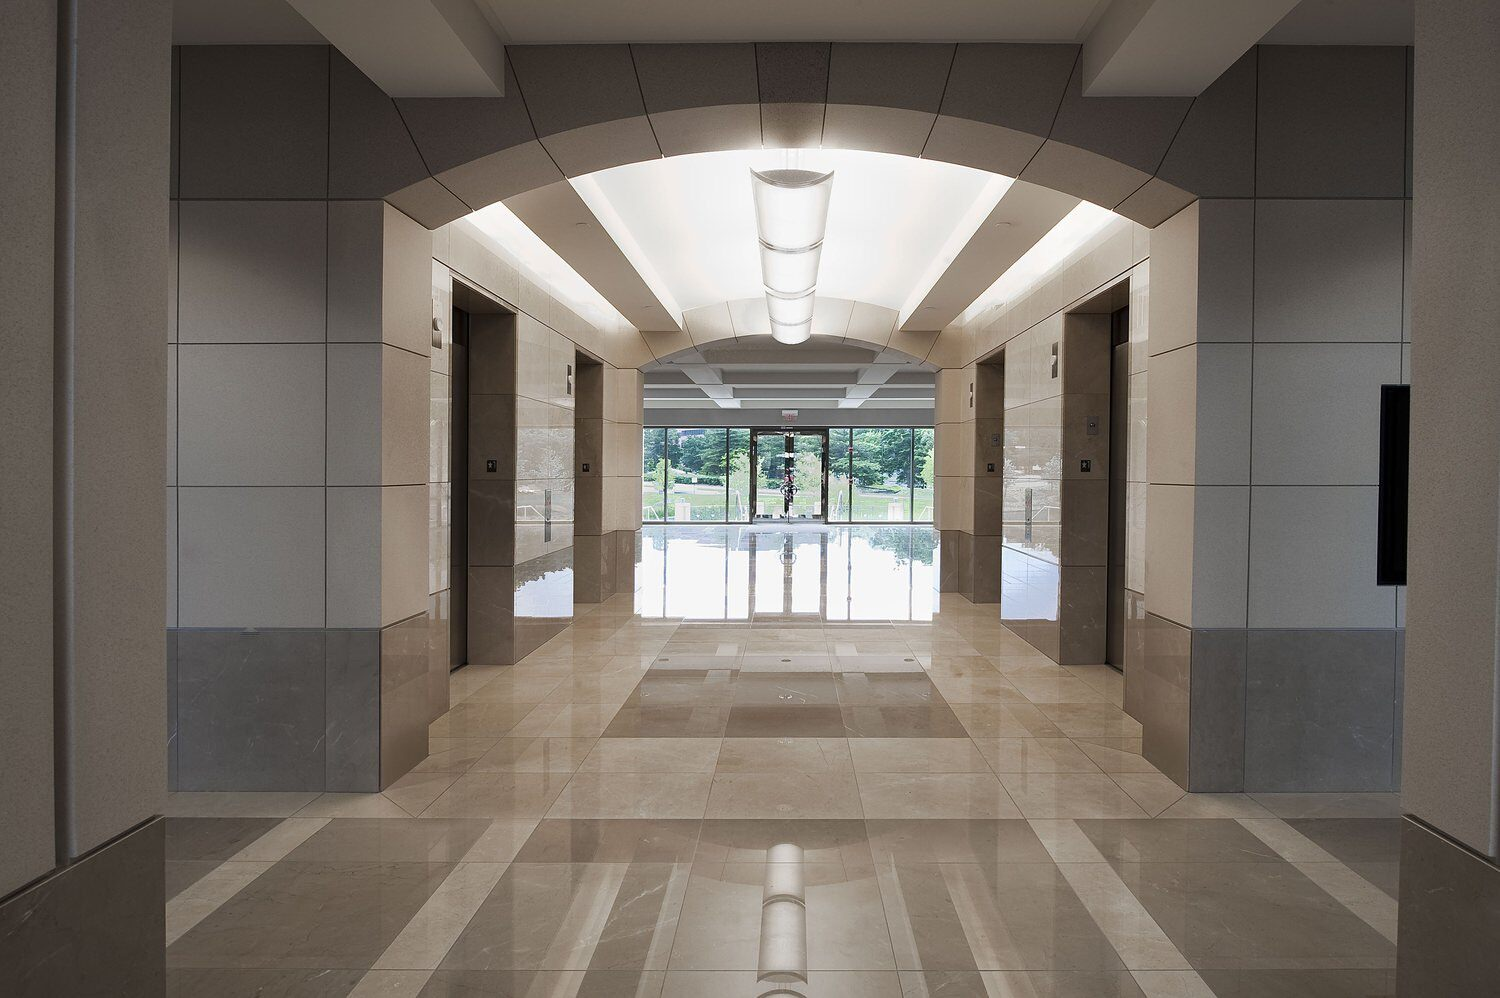 A corridor that leads through an office building and it has four elevator doors off of it.